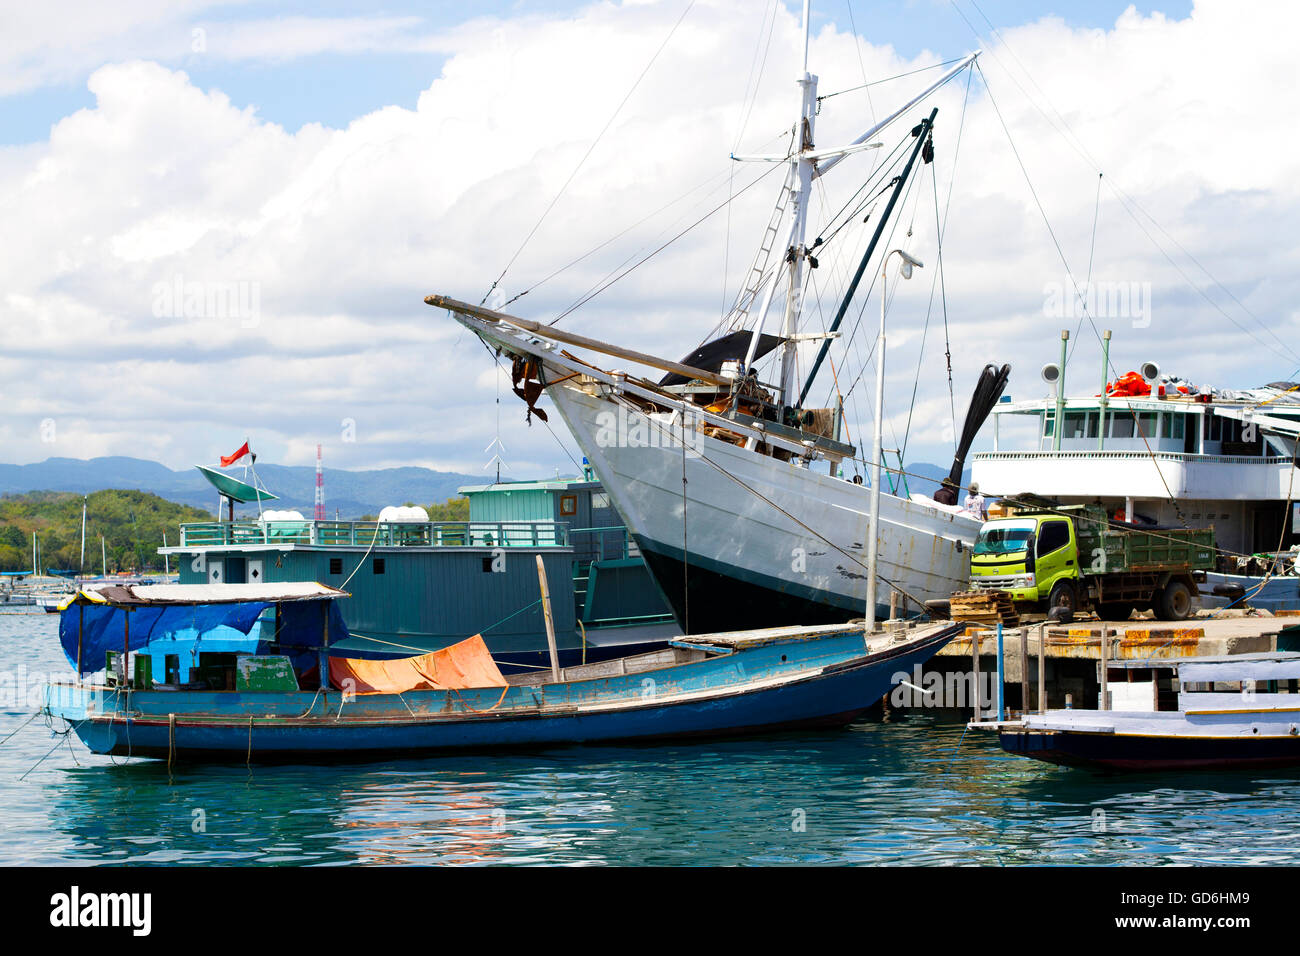 Labuan Bajo harbor - Stock Image